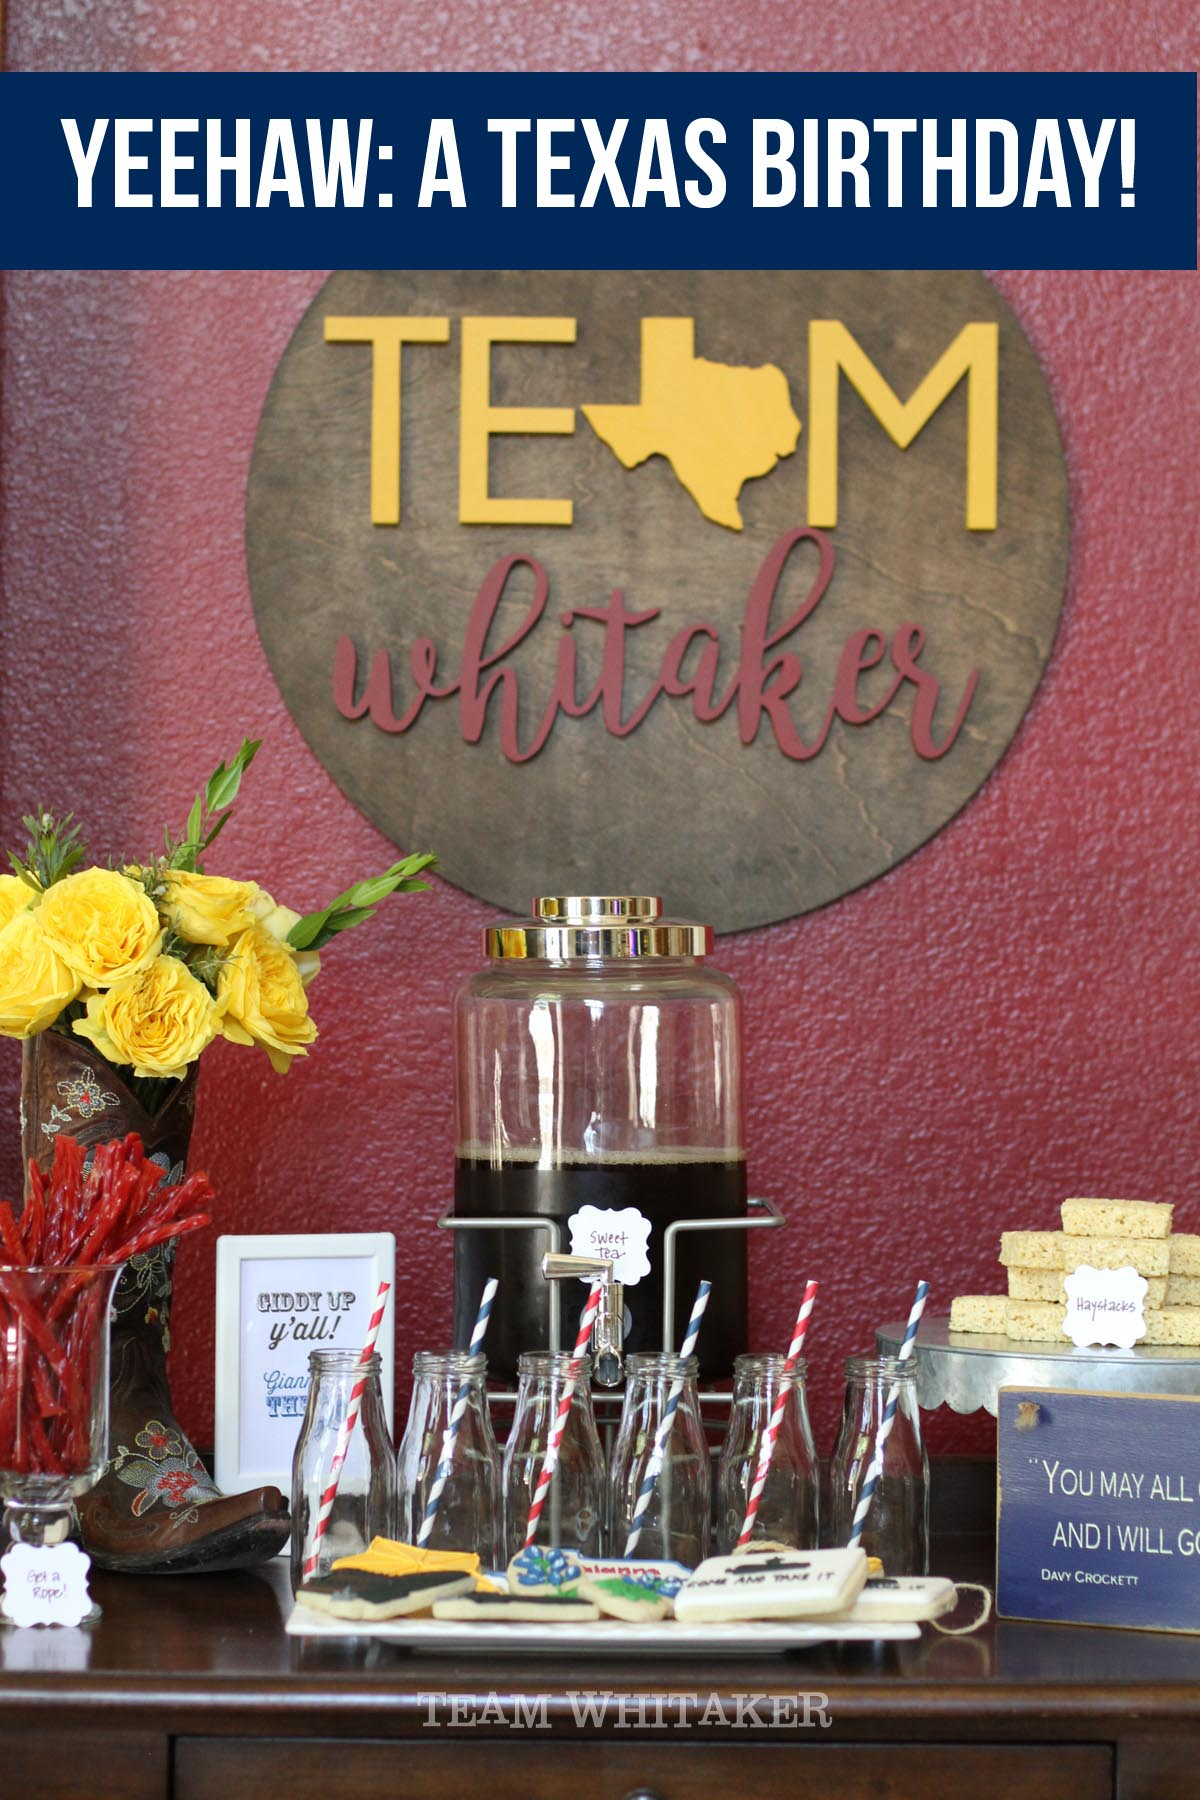 Planning a Texas-sized birthday for your son or daughter? This dessert table is sure to have some winners of ideas.